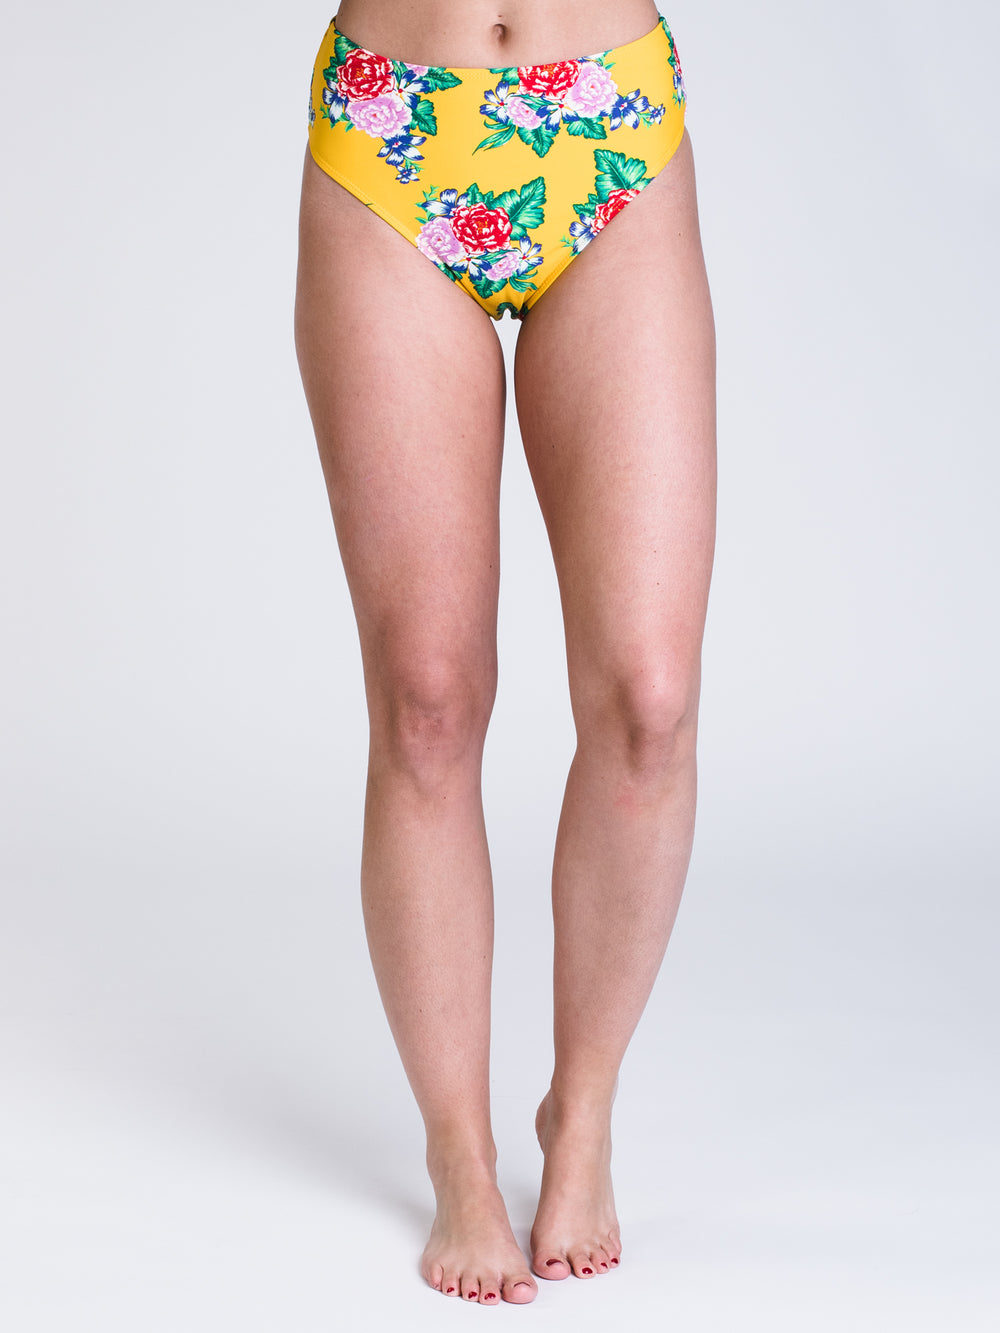 GOLDEN GARDEN HW SWIM BOTTOMS - CLEARANCE